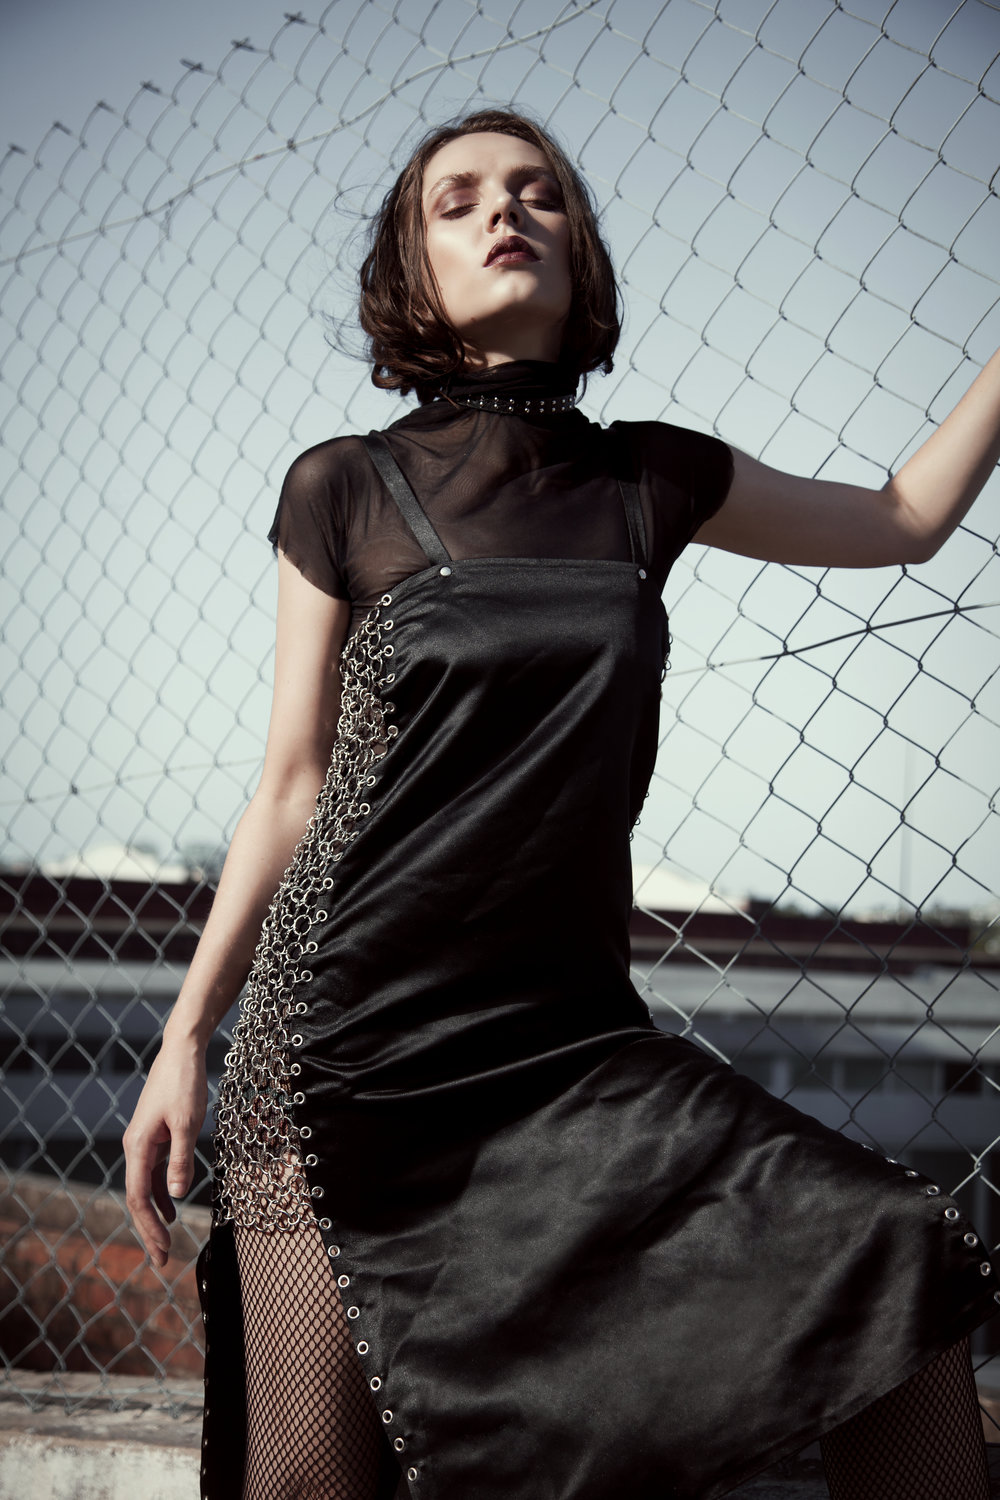 Top: Homage / Dress: Stephanie Schafer / Belt: Zephyr Collection